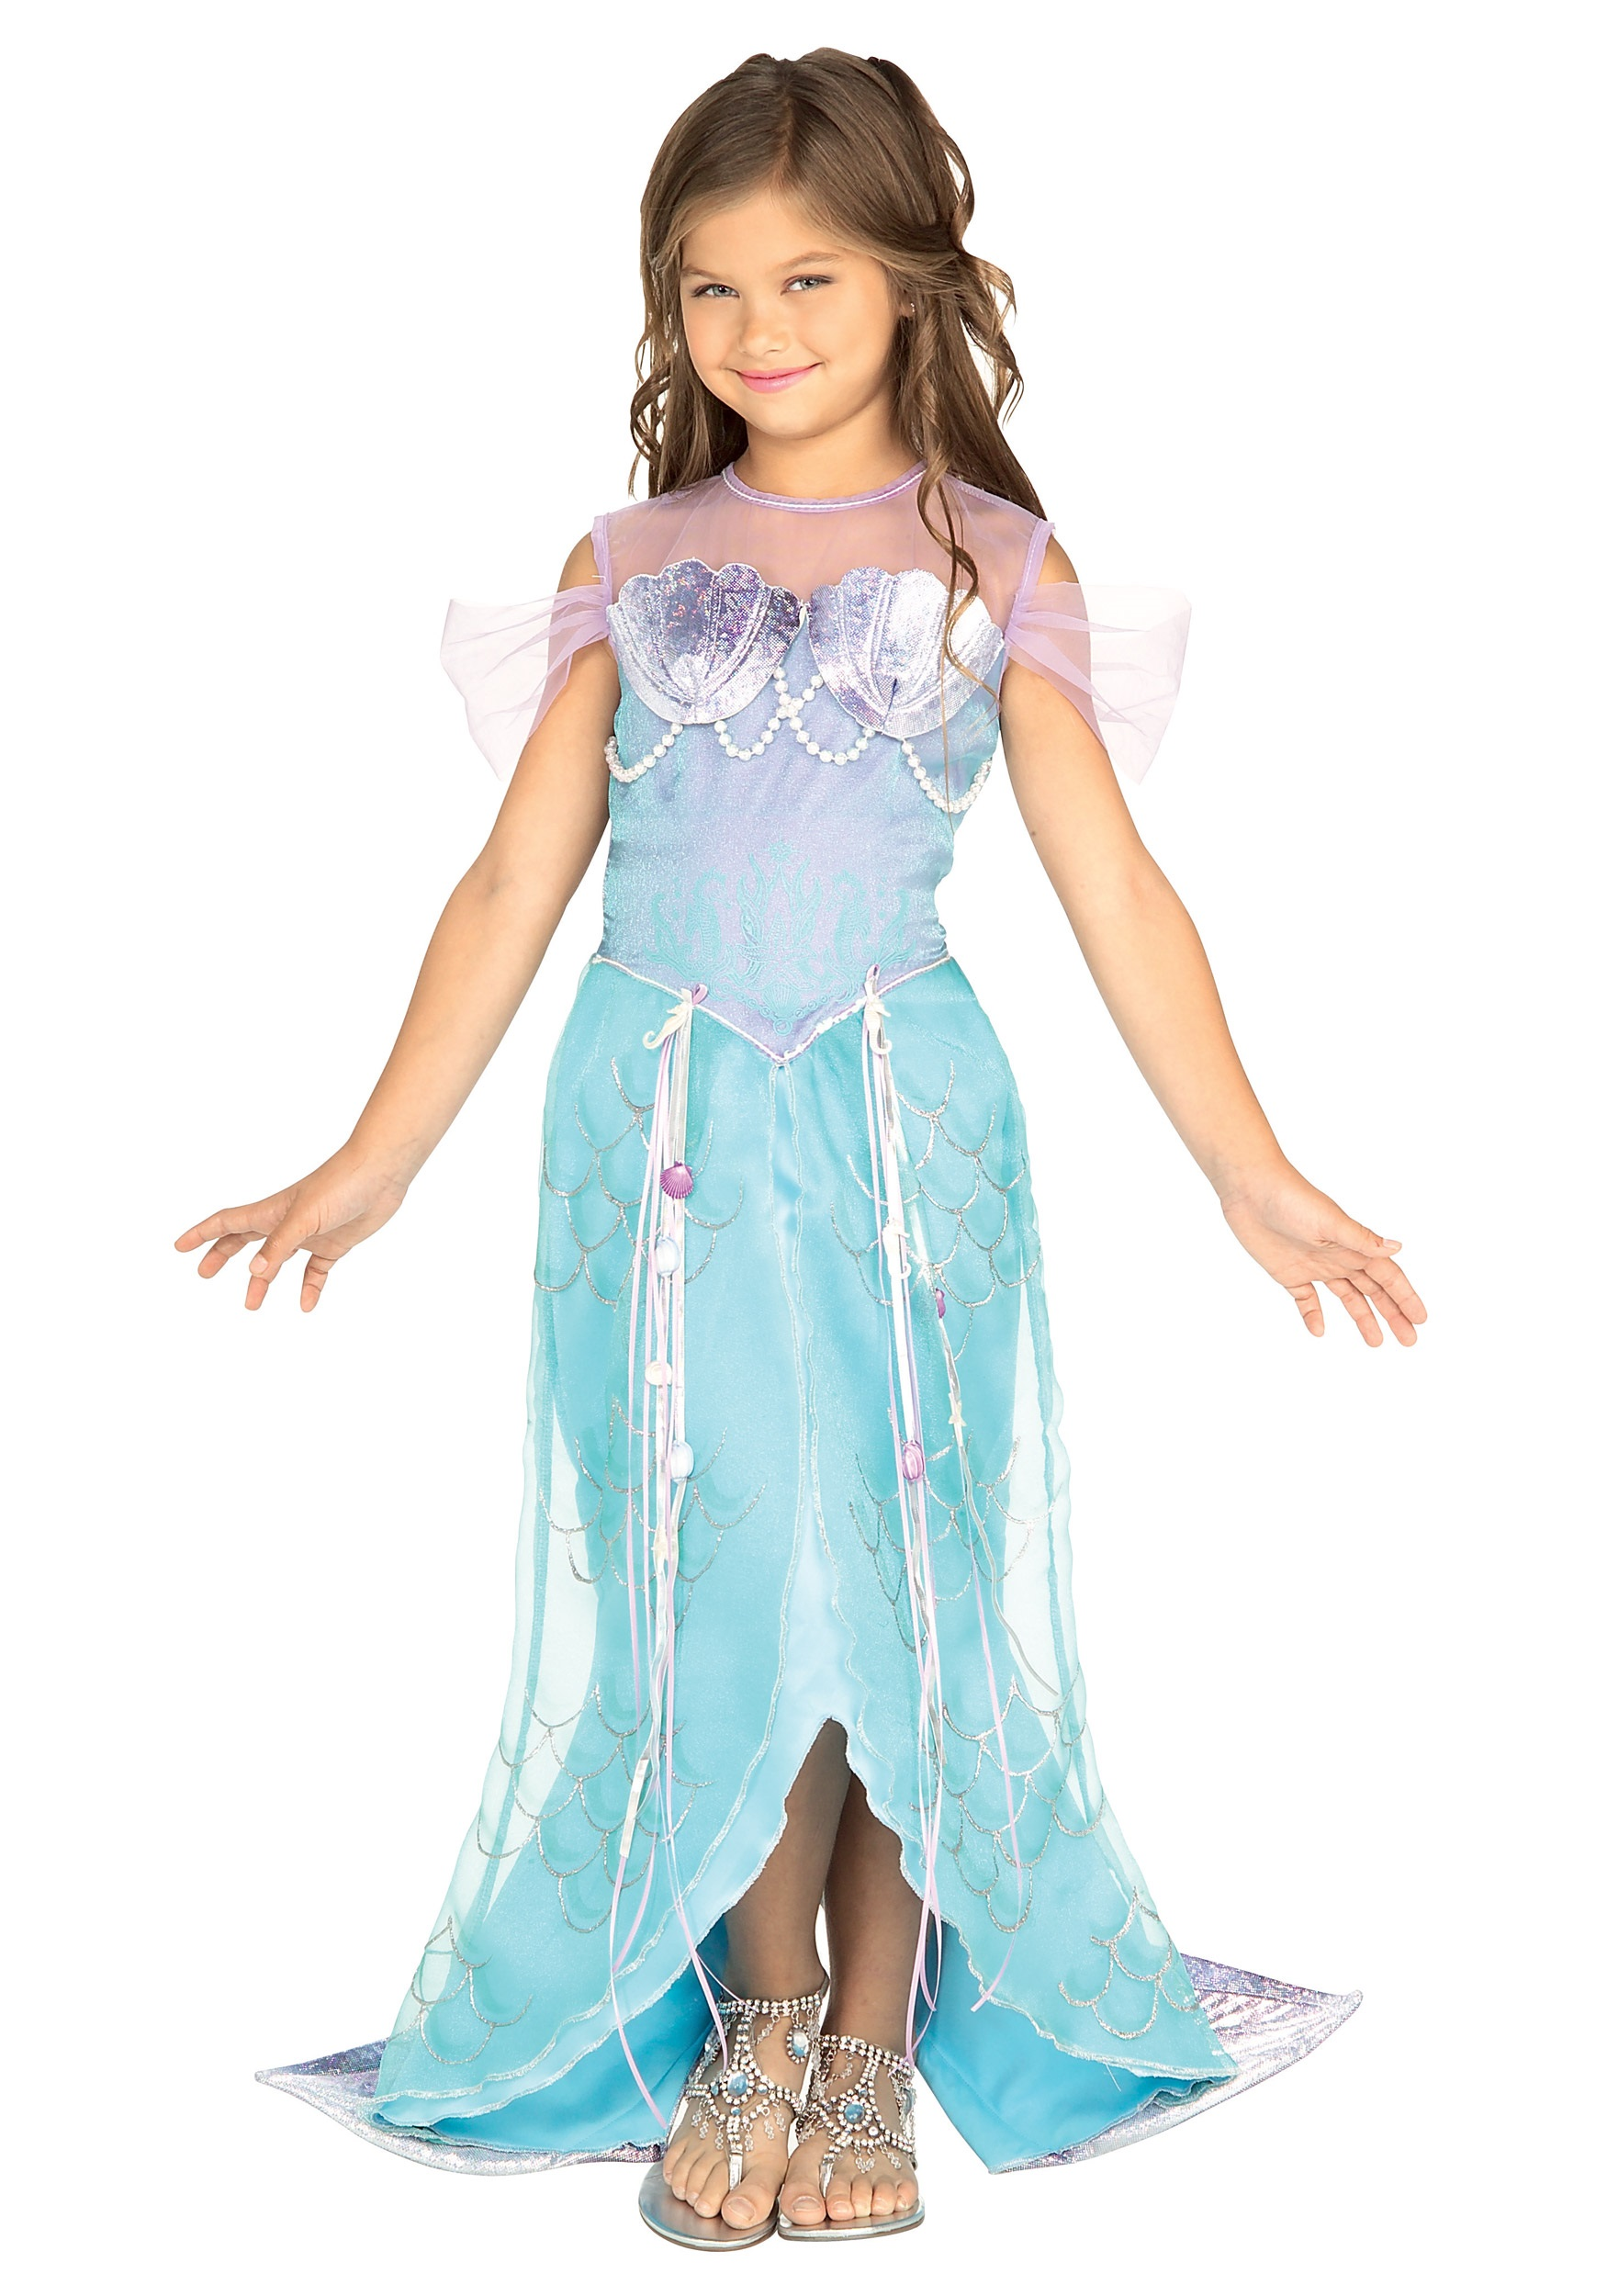 Child Mermaid Princess Costume  sc 1 st  Halloween Costumes & Child Mermaid Princess Costume - Halloween Costumes